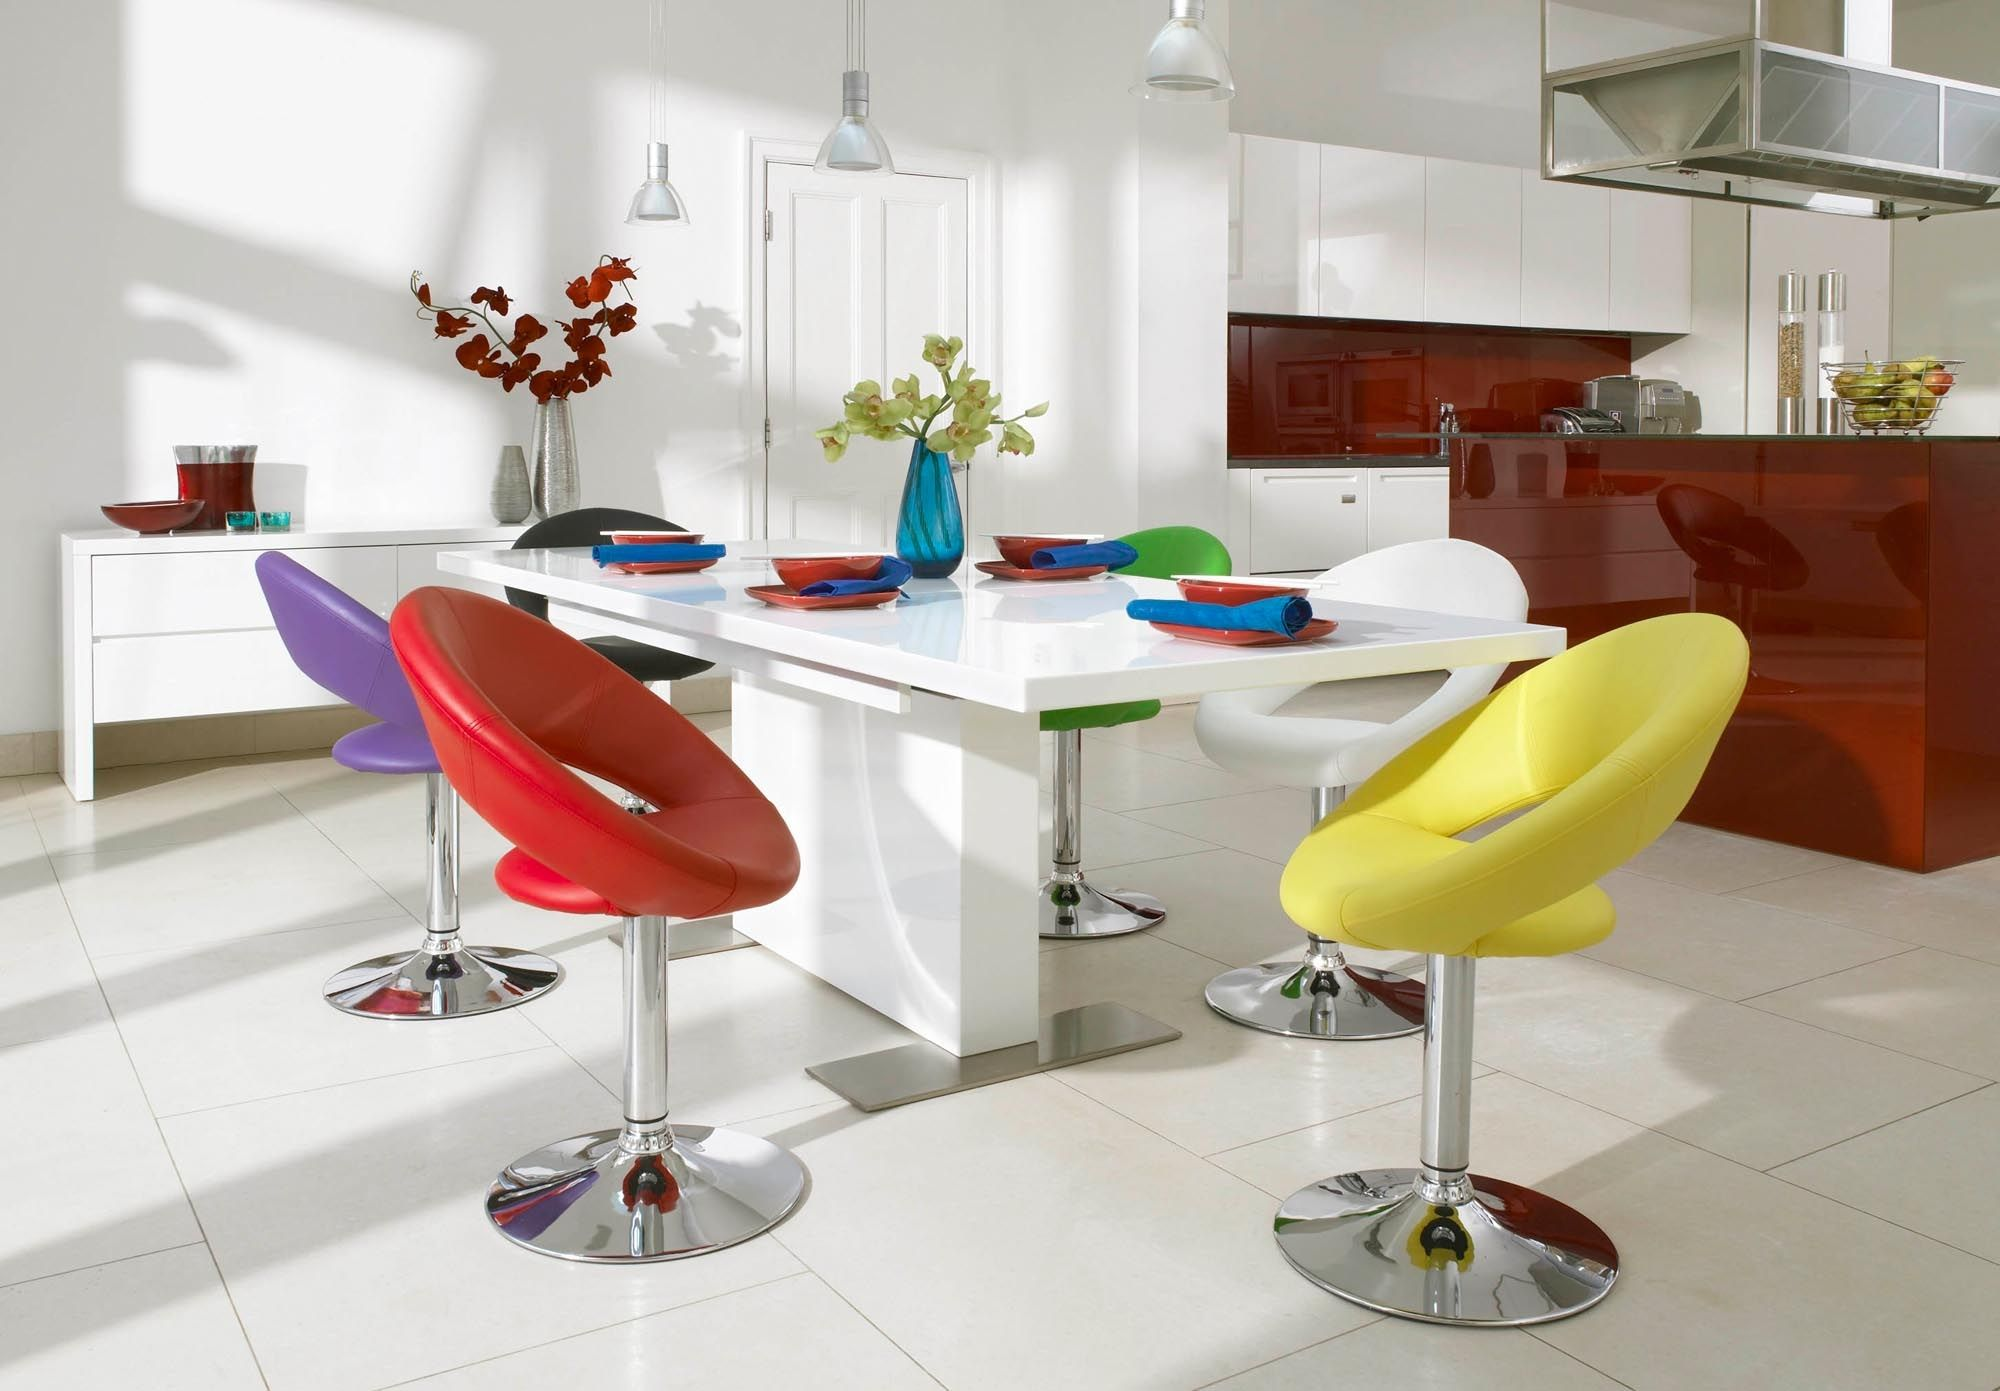 modern kitchen table chairs Plump swivel chair Tank Dining Tables Chairs Dining Room Furniture Furniture Village